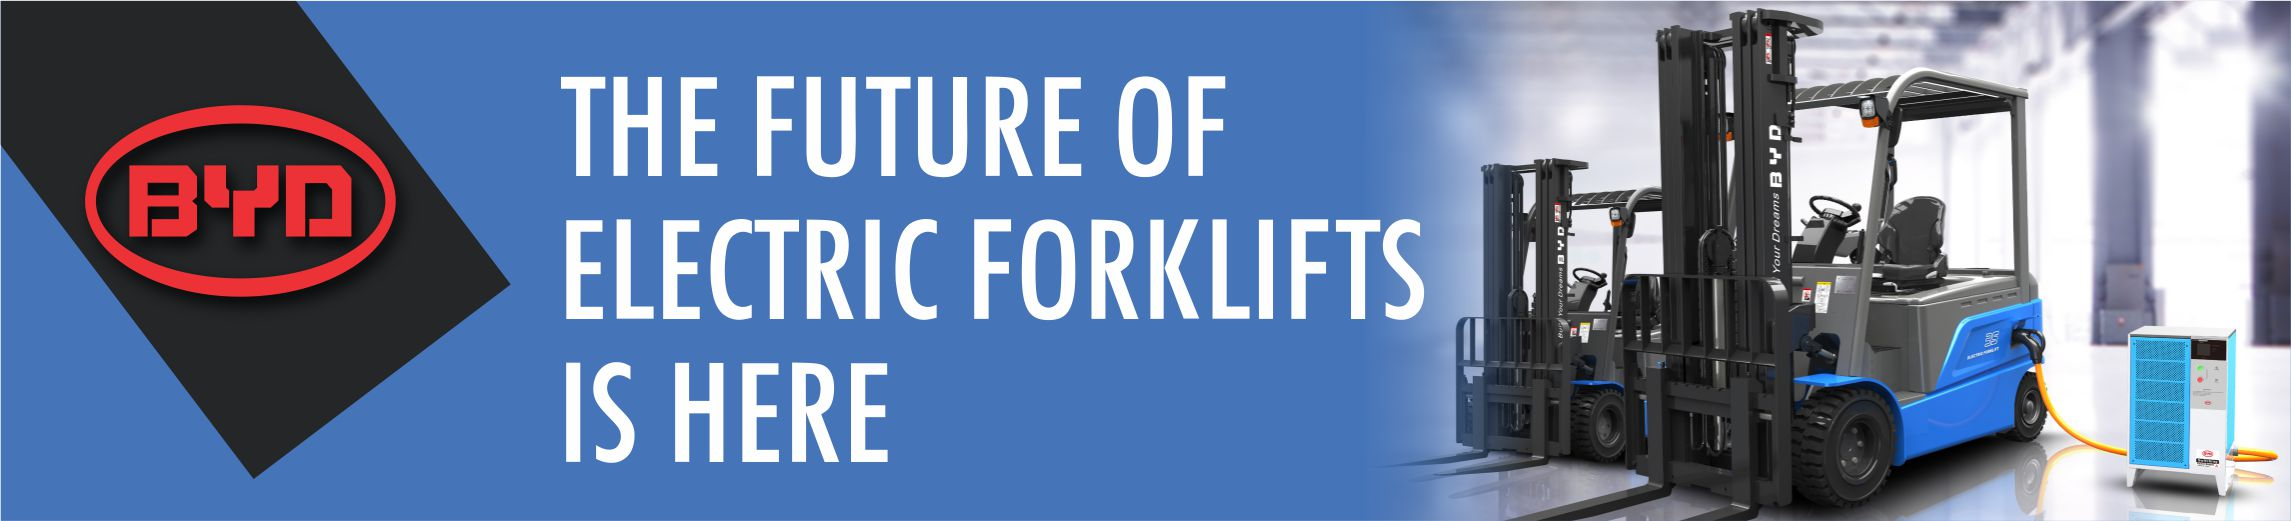 BYD Electric Forklifts